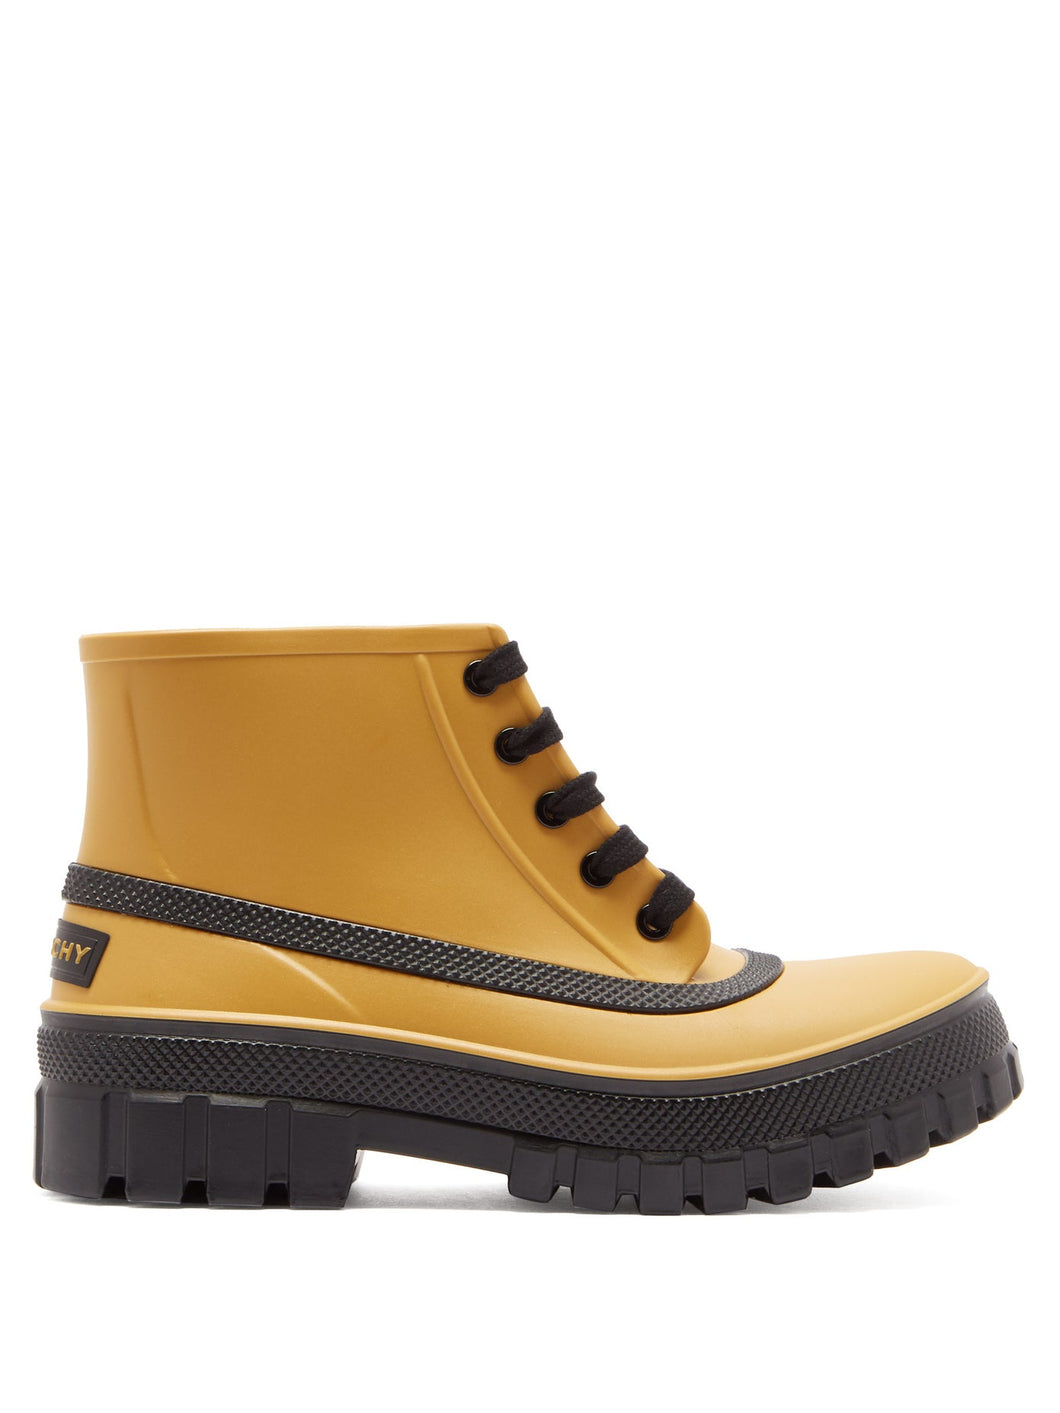 Glaston lace-up rubber rain boots